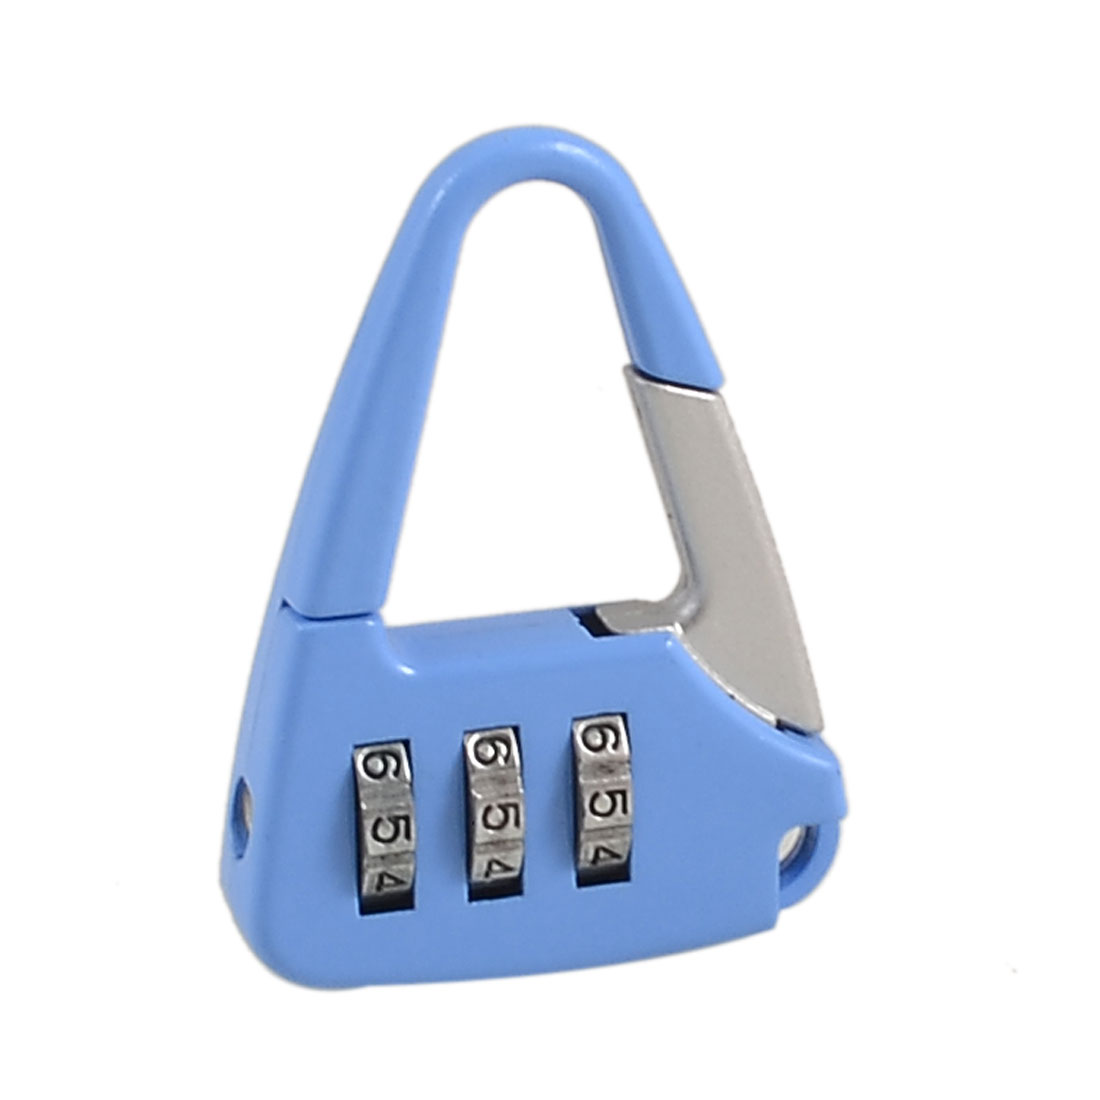 Metal Handbag Shaped 3 Digit Resettable Combination Lock Blue